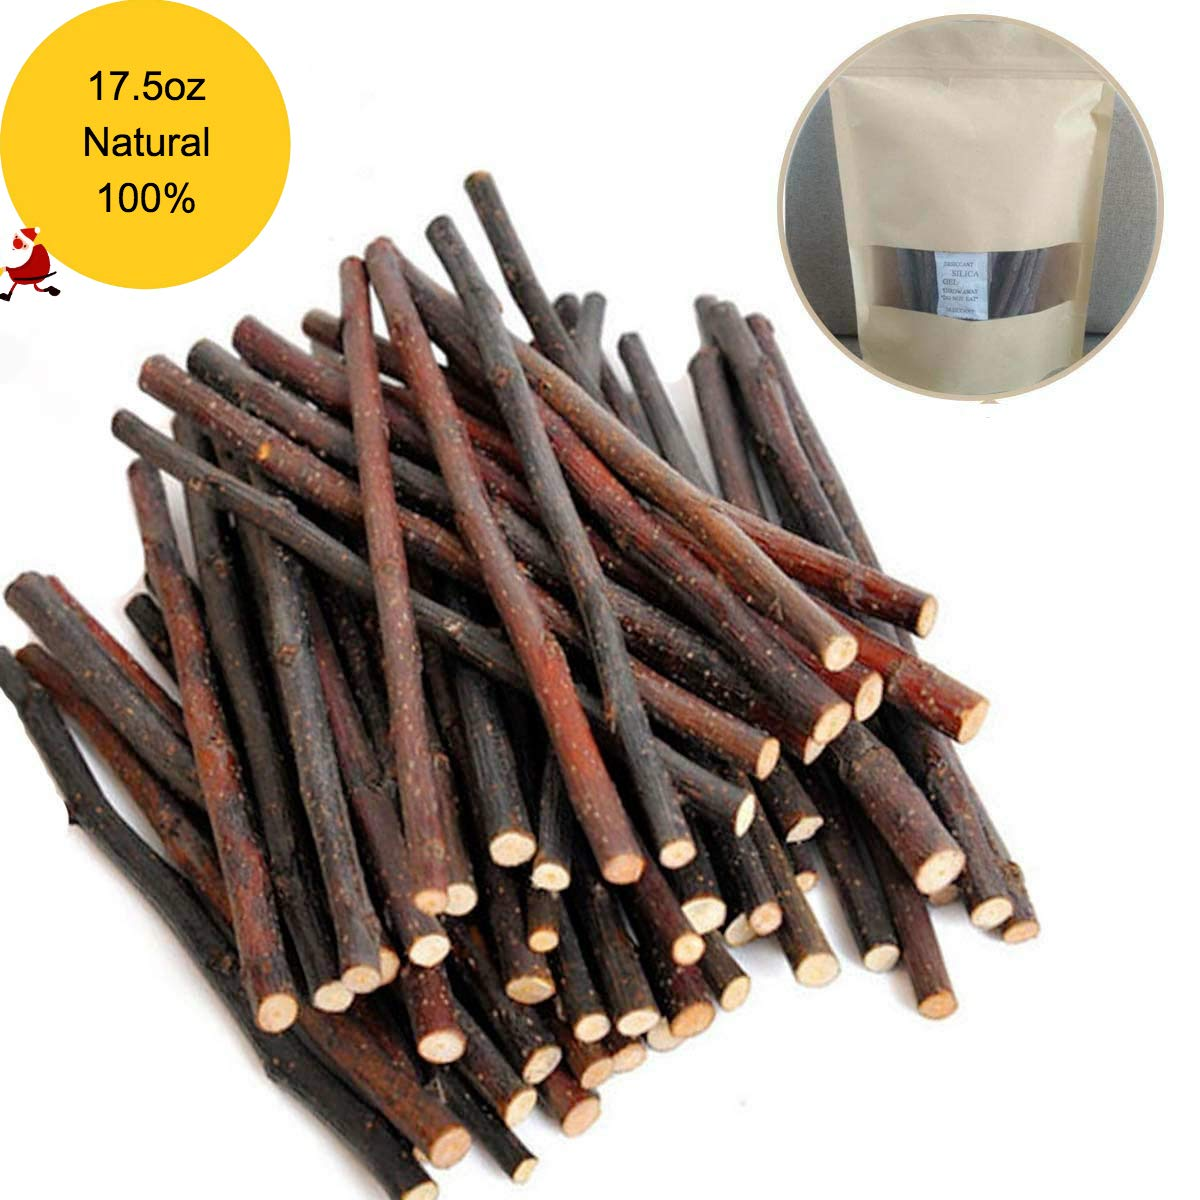 250g and 500g Natural Apple Sticks Small Animals Molar Wood Treats Toys Chinchilla Guinea Pig Hamster Rabbit Gerbil Parrot Bunny and Small Animals Chew Stick Toys Treats 61FXLiK7a1L